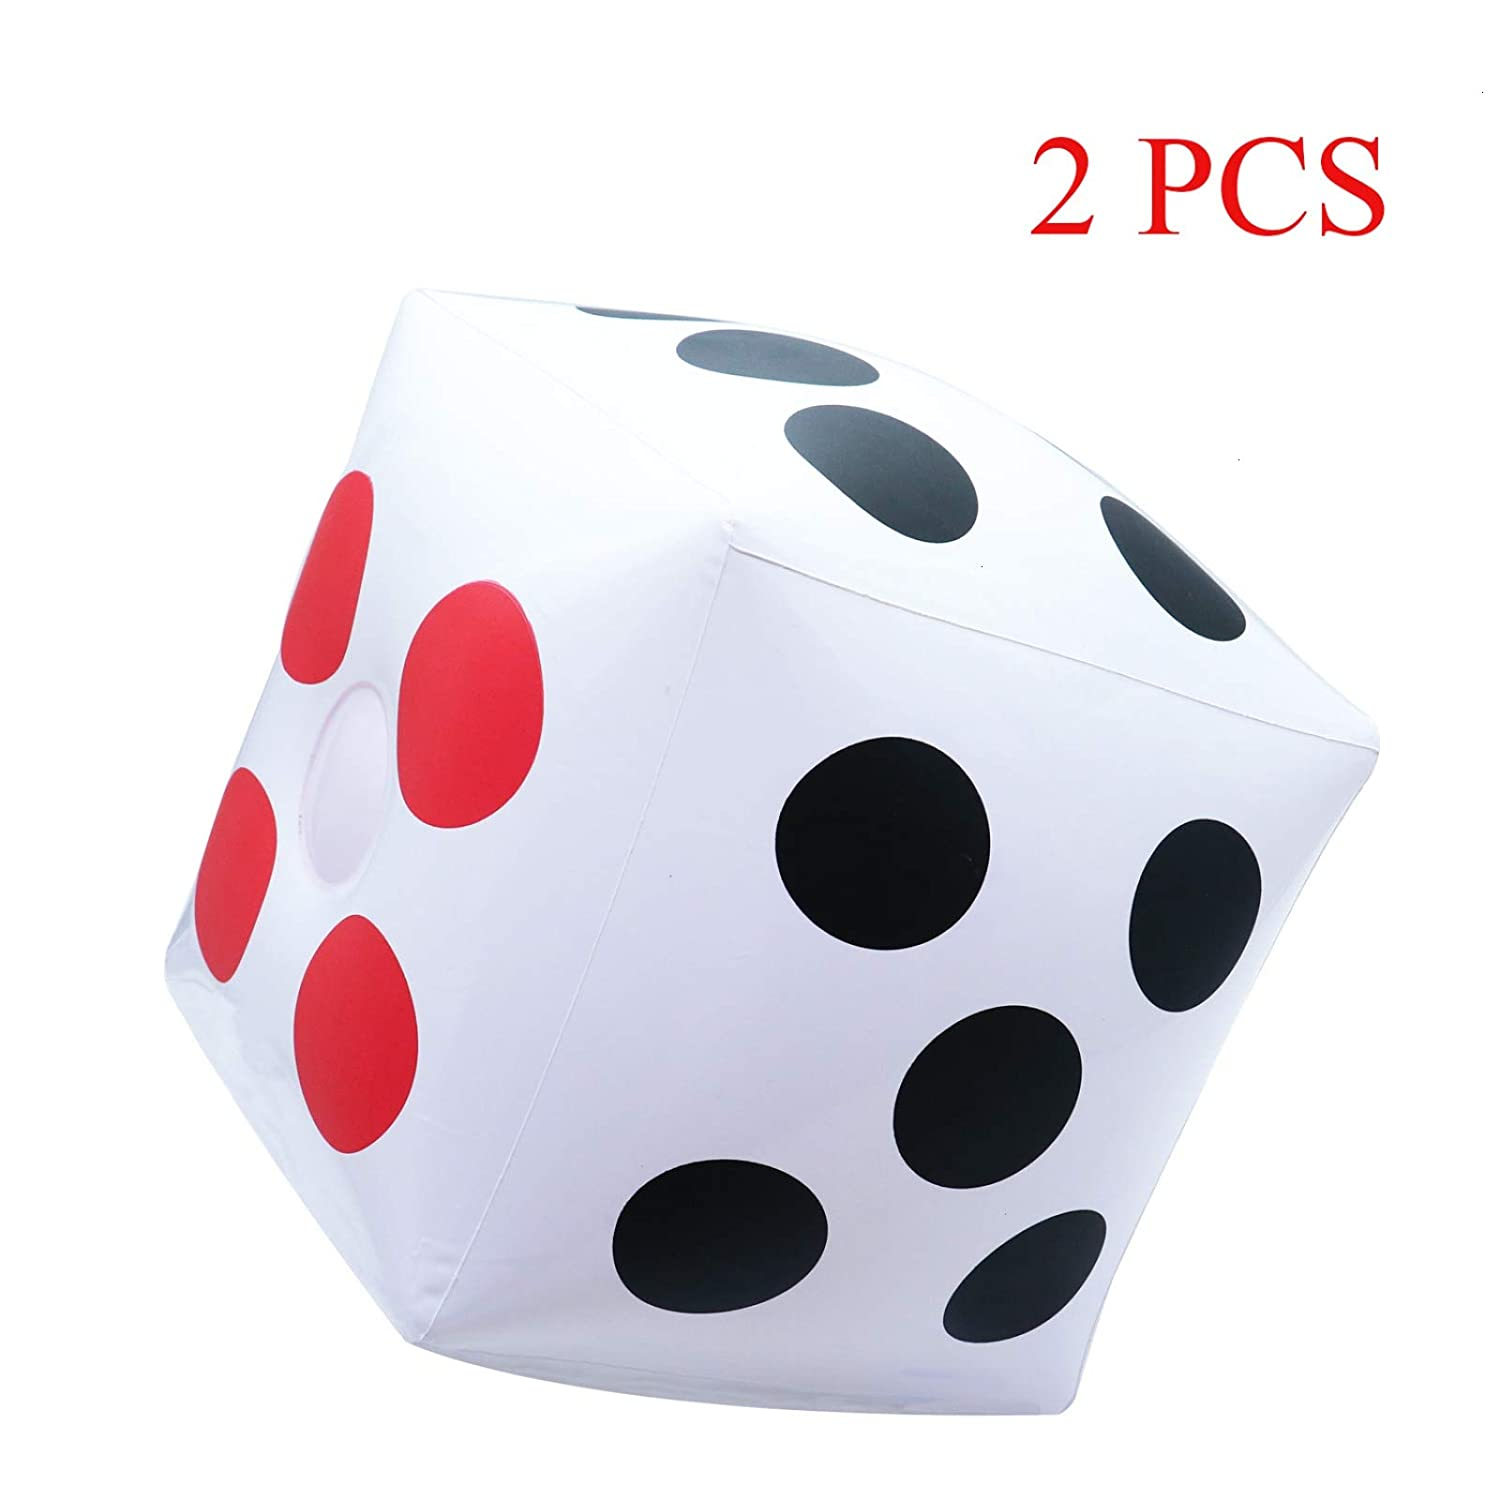 Dice Gaming Dice